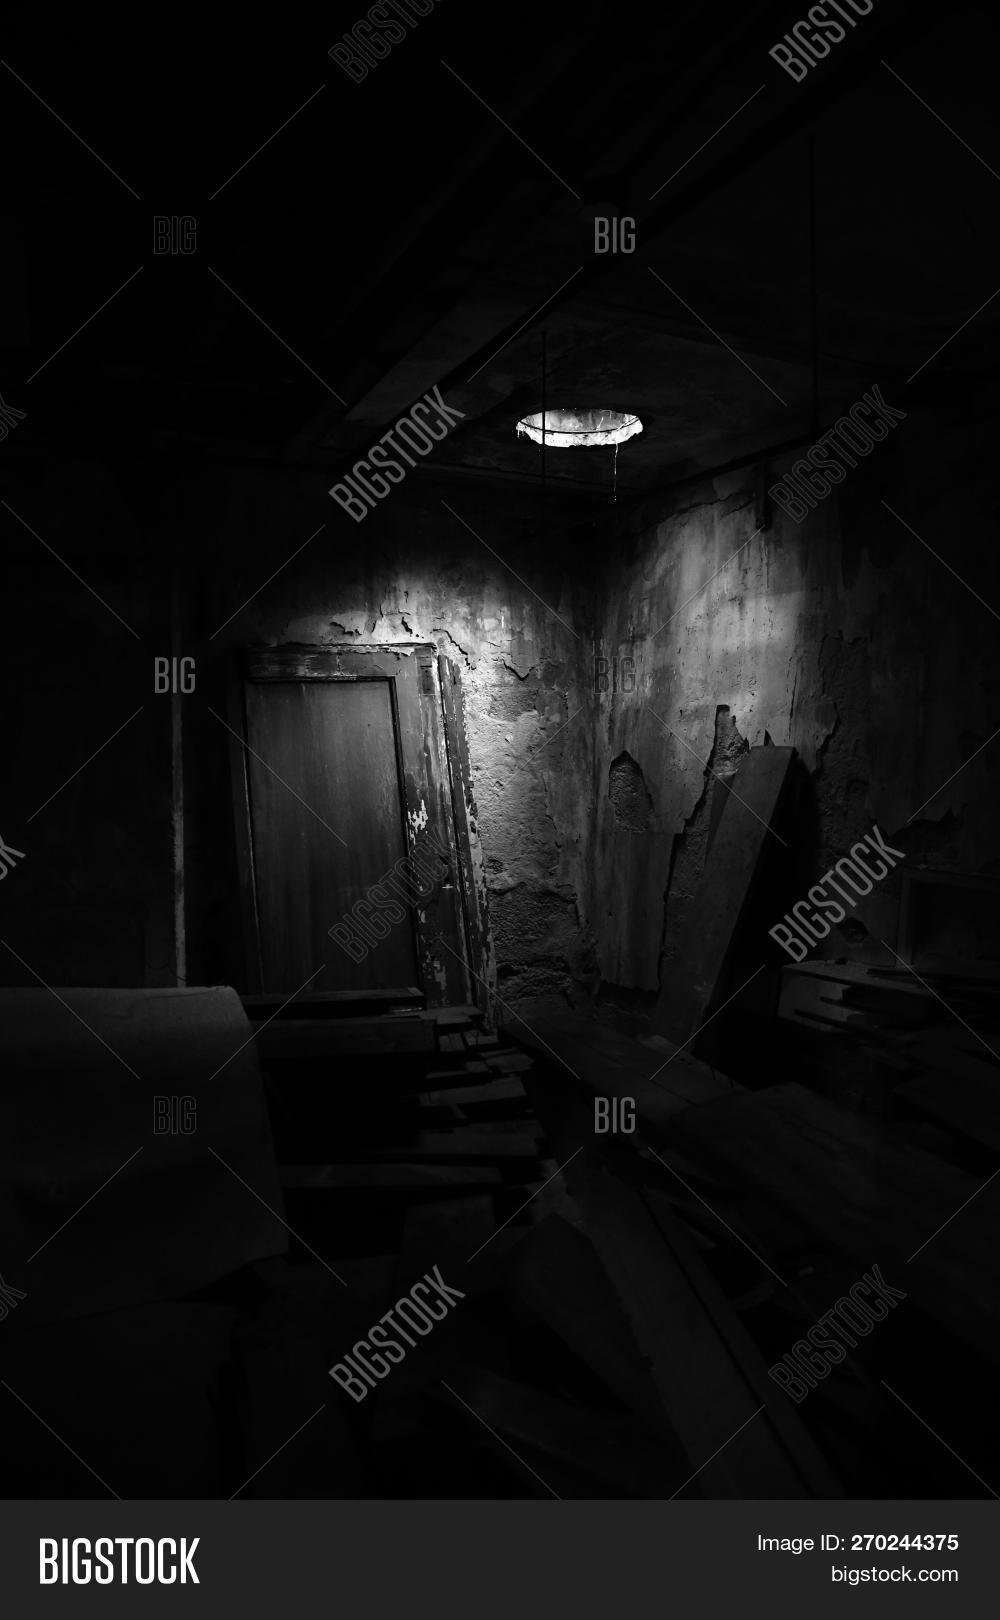 Abandoned Building  Image & Photo (Free Trial) | Bigstock